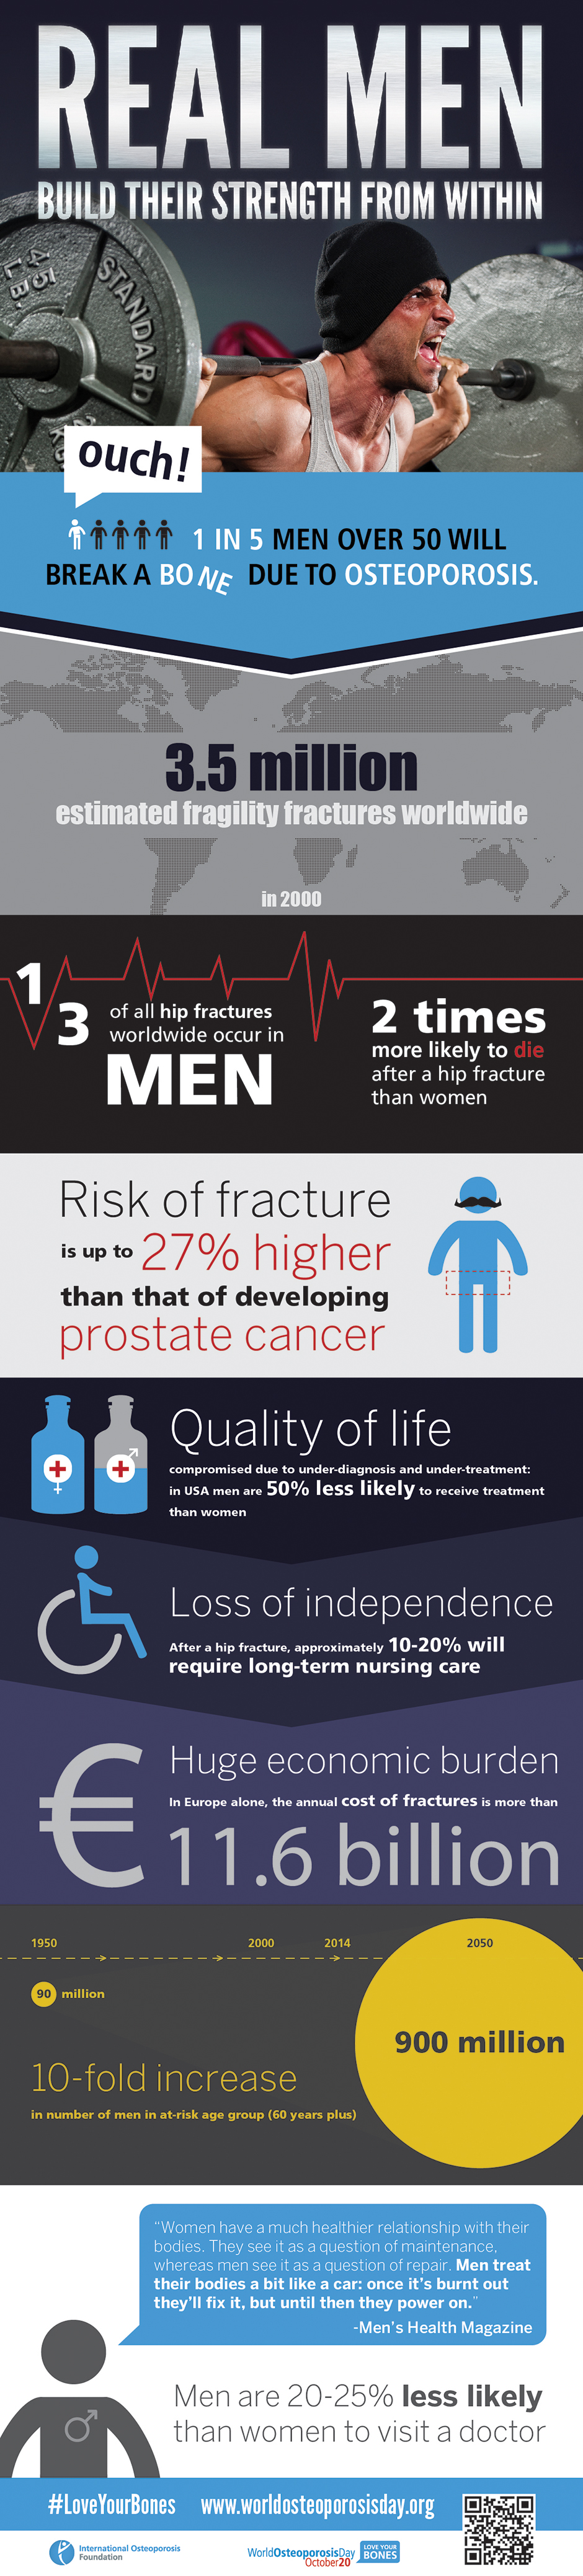 20+ Mens health and osteoporosis info